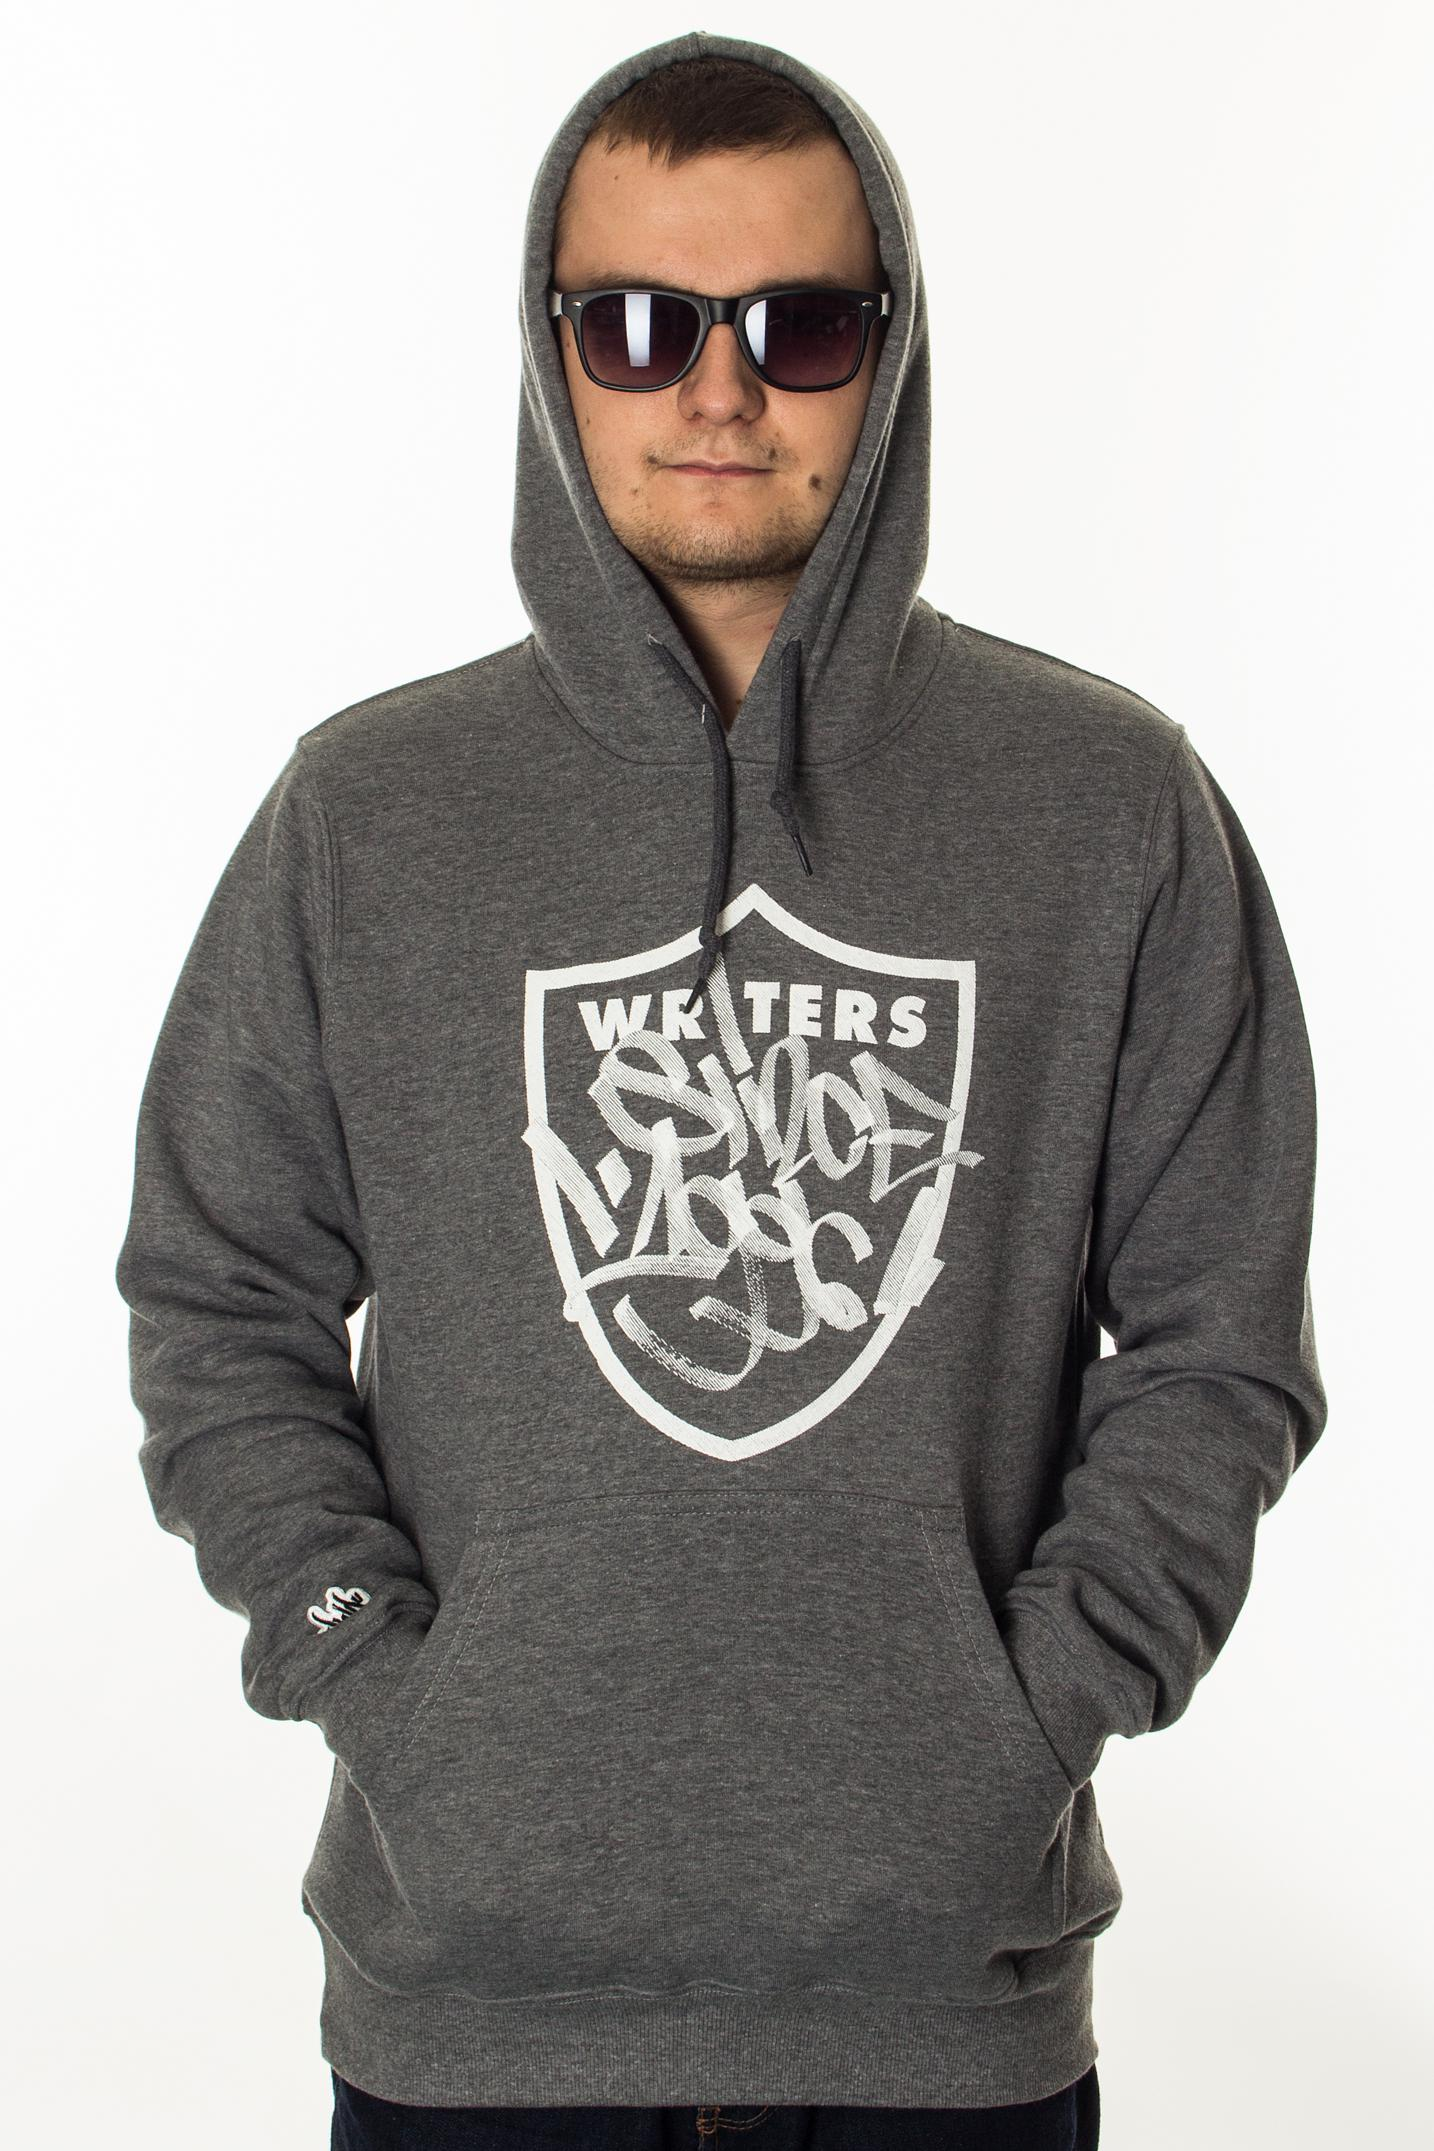 JWP BLUZA KAPTUR WRITERS GREY